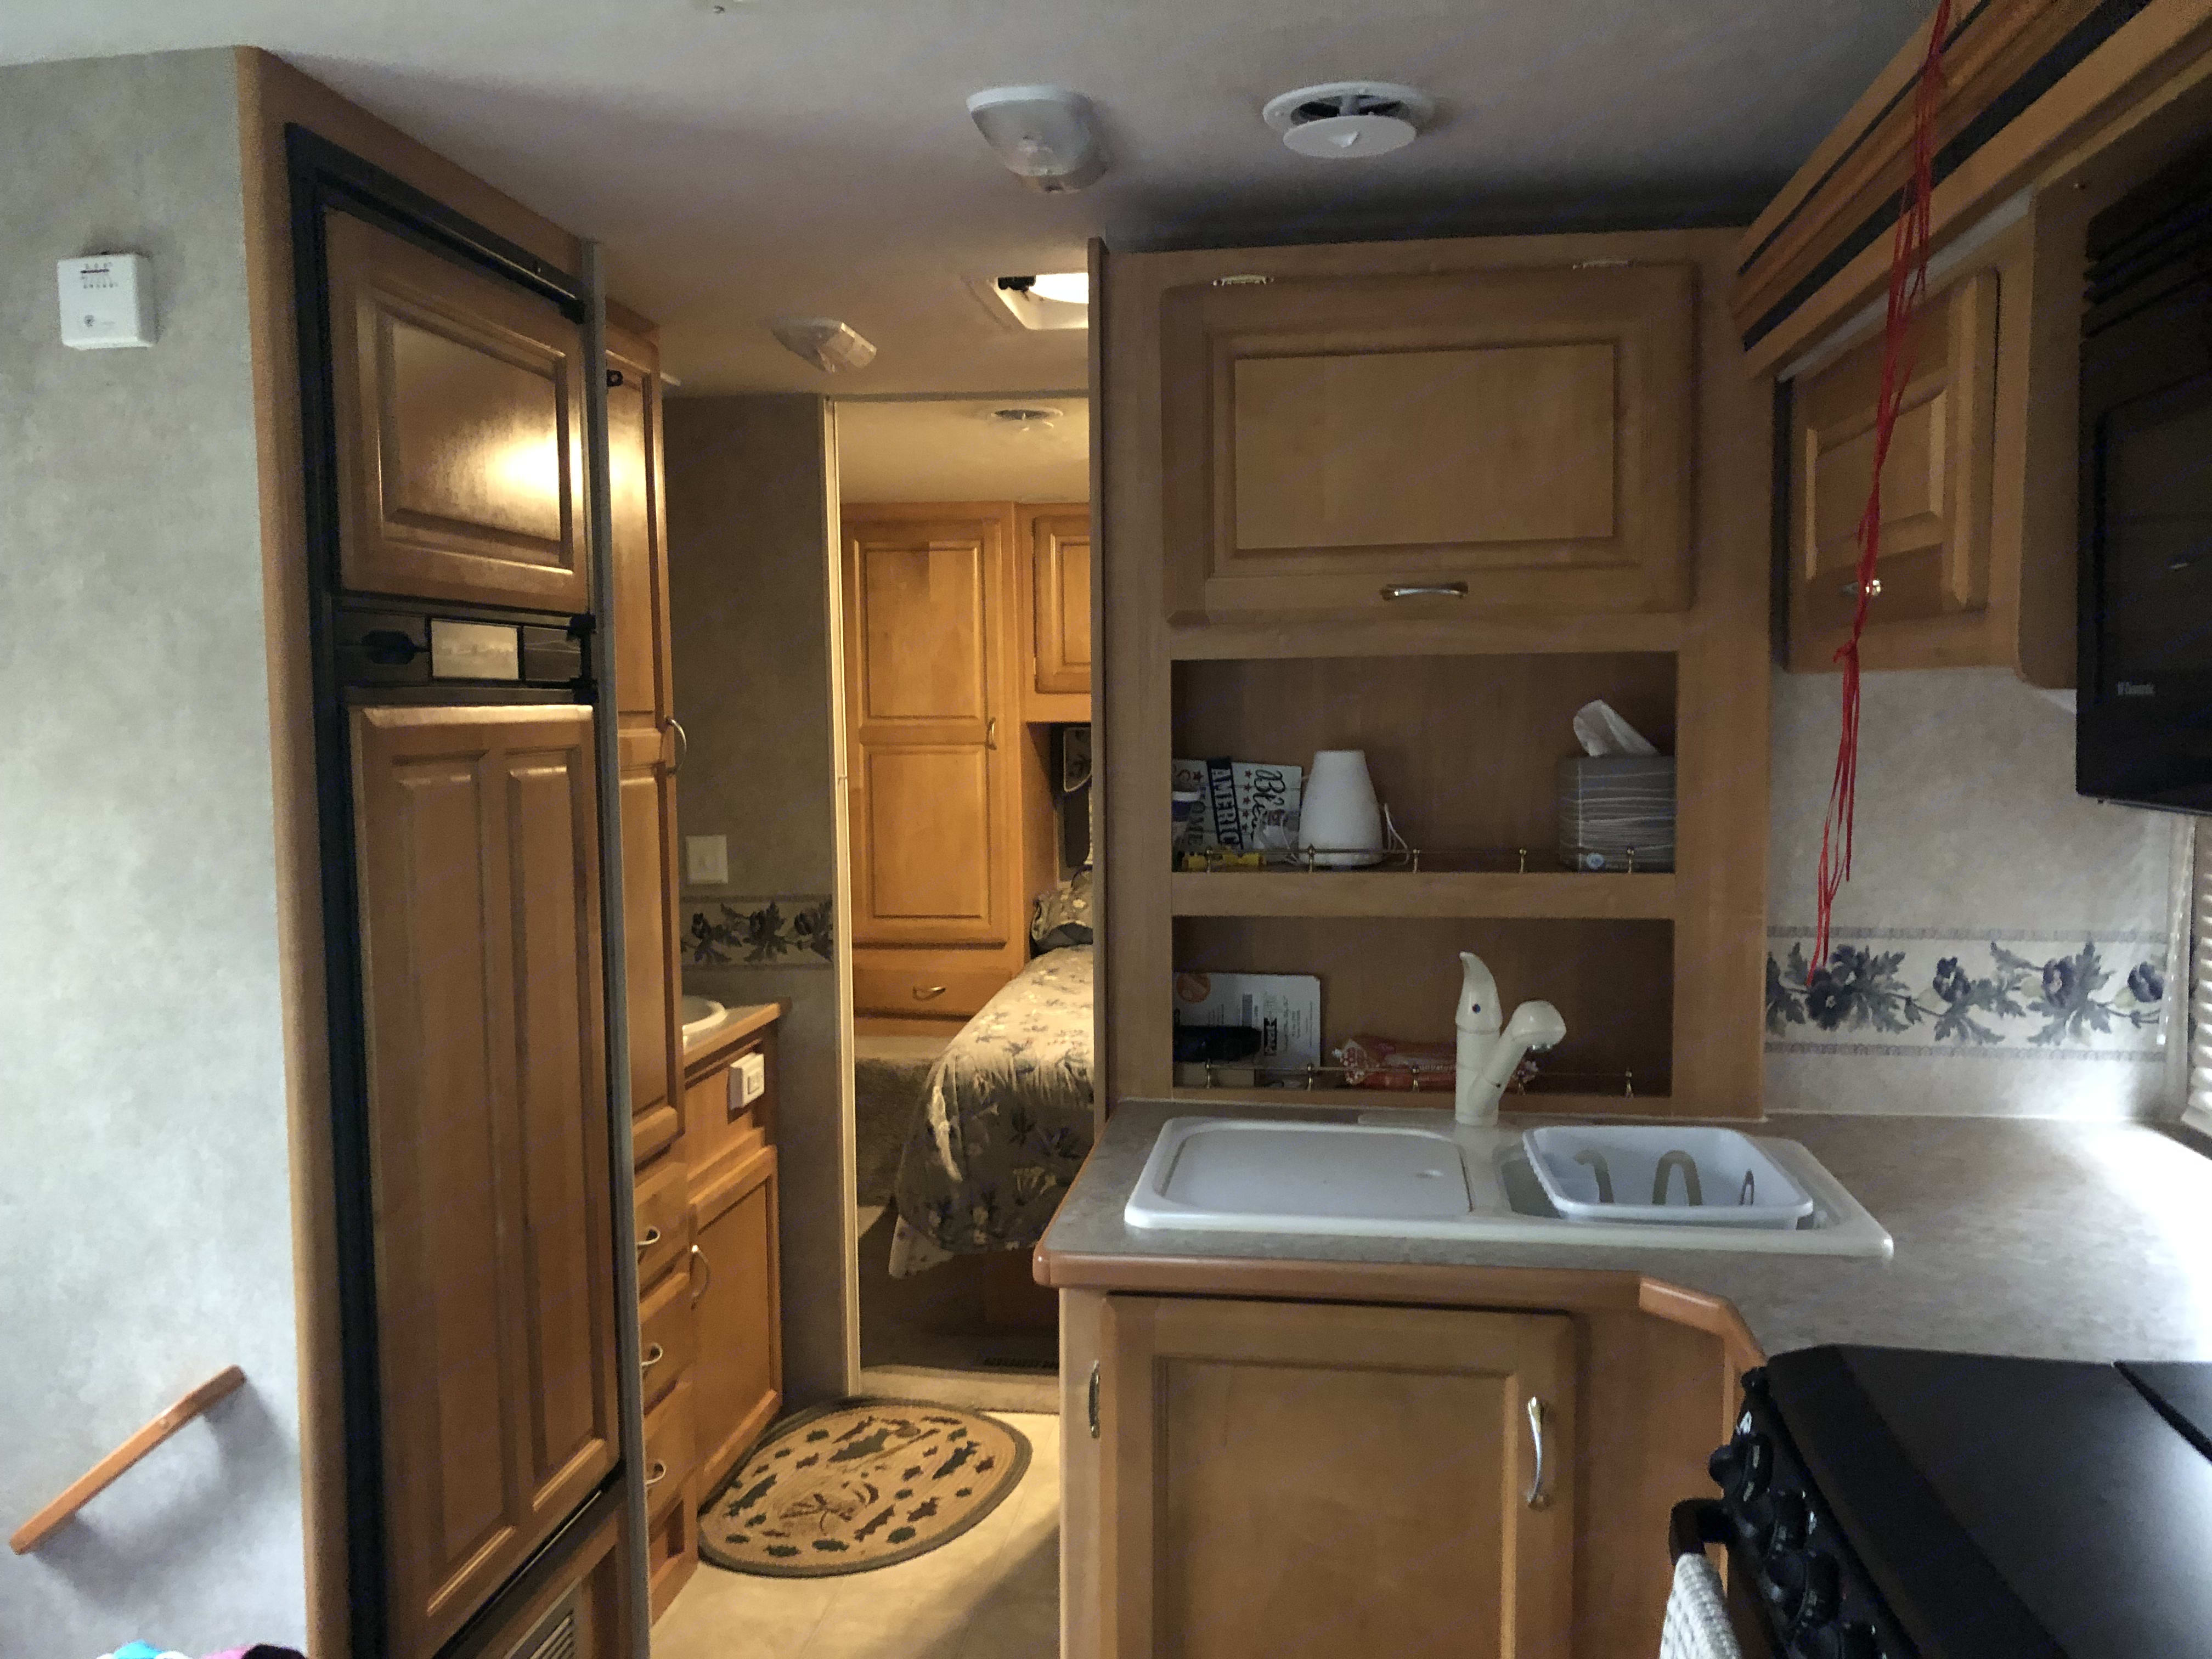 Kitchen area. Jayco Greyhawk 2005